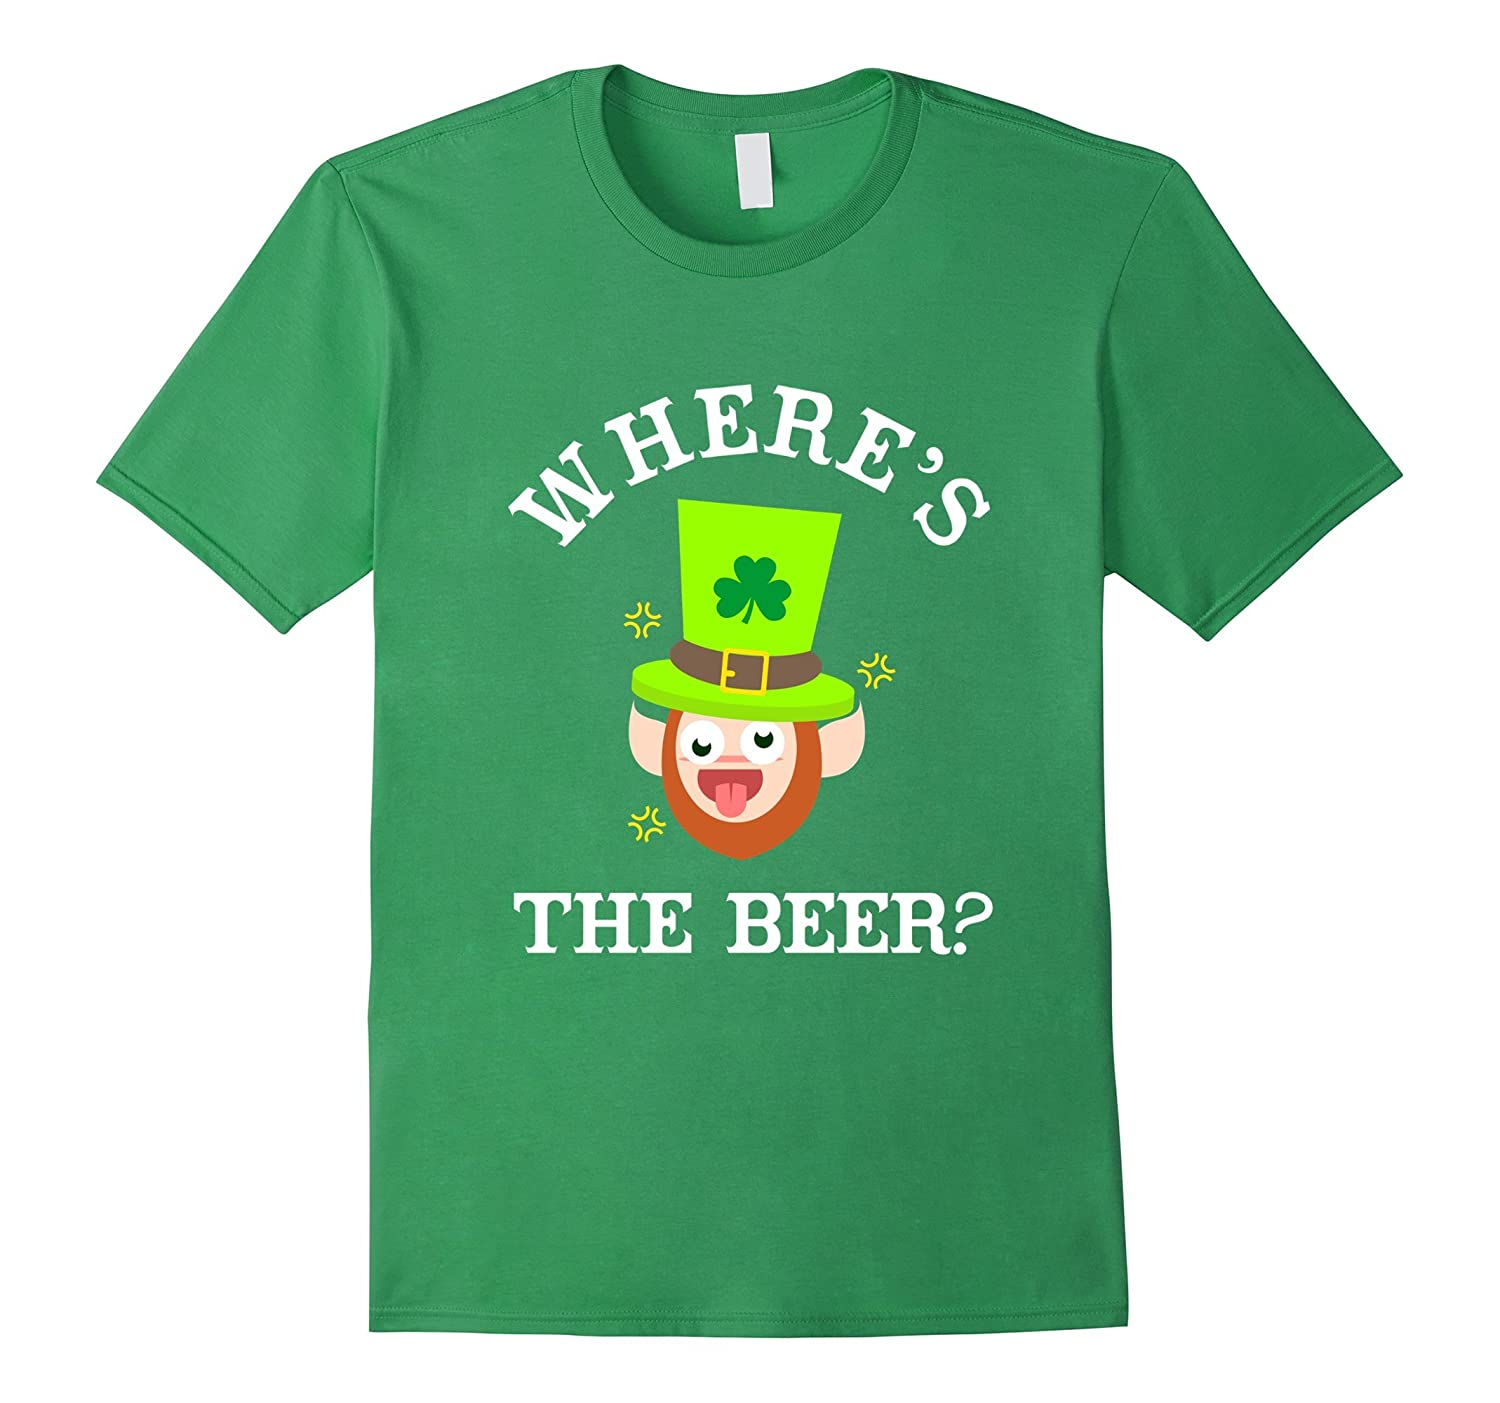 FUNNY WHERES THE BEER T-SHIRT - St Patricks Day Gift-CD